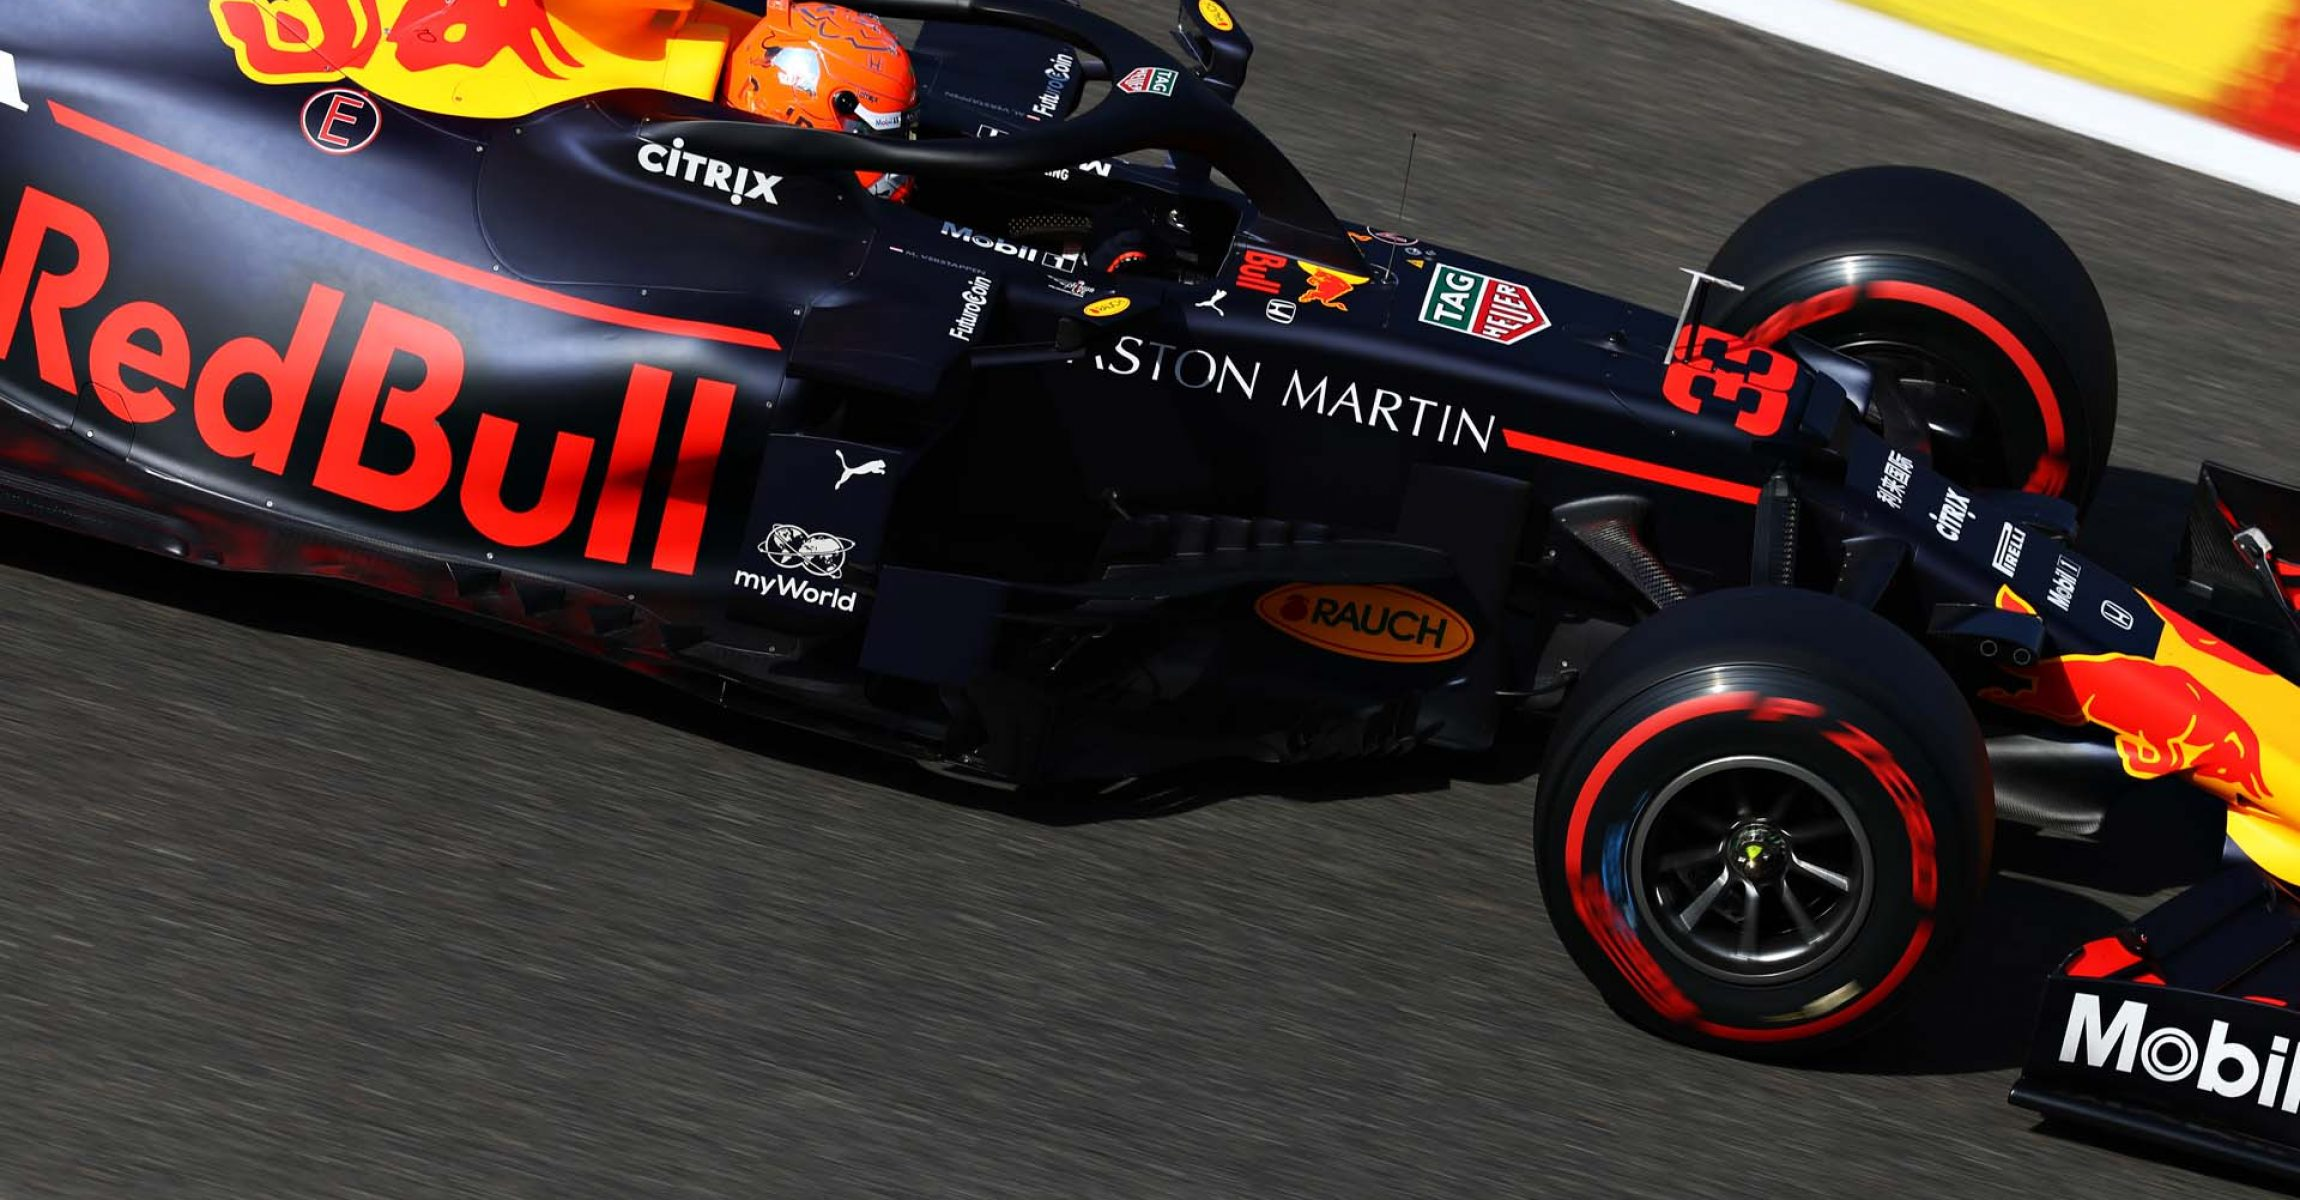 SPA, BELGIUM - AUGUST 31: Max Verstappen of the Netherlands driving the (33) Aston Martin Red Bull Racing RB15 on track during final practice for the F1 Grand Prix of Belgium at Circuit de Spa-Francorchamps on August 31, 2019 in Spa, Belgium. (Photo by Mark Thompson/Getty Images) // Getty Images / Red Bull Content Pool  // AP-21E7ACQKW2111 // Usage for editorial use only //